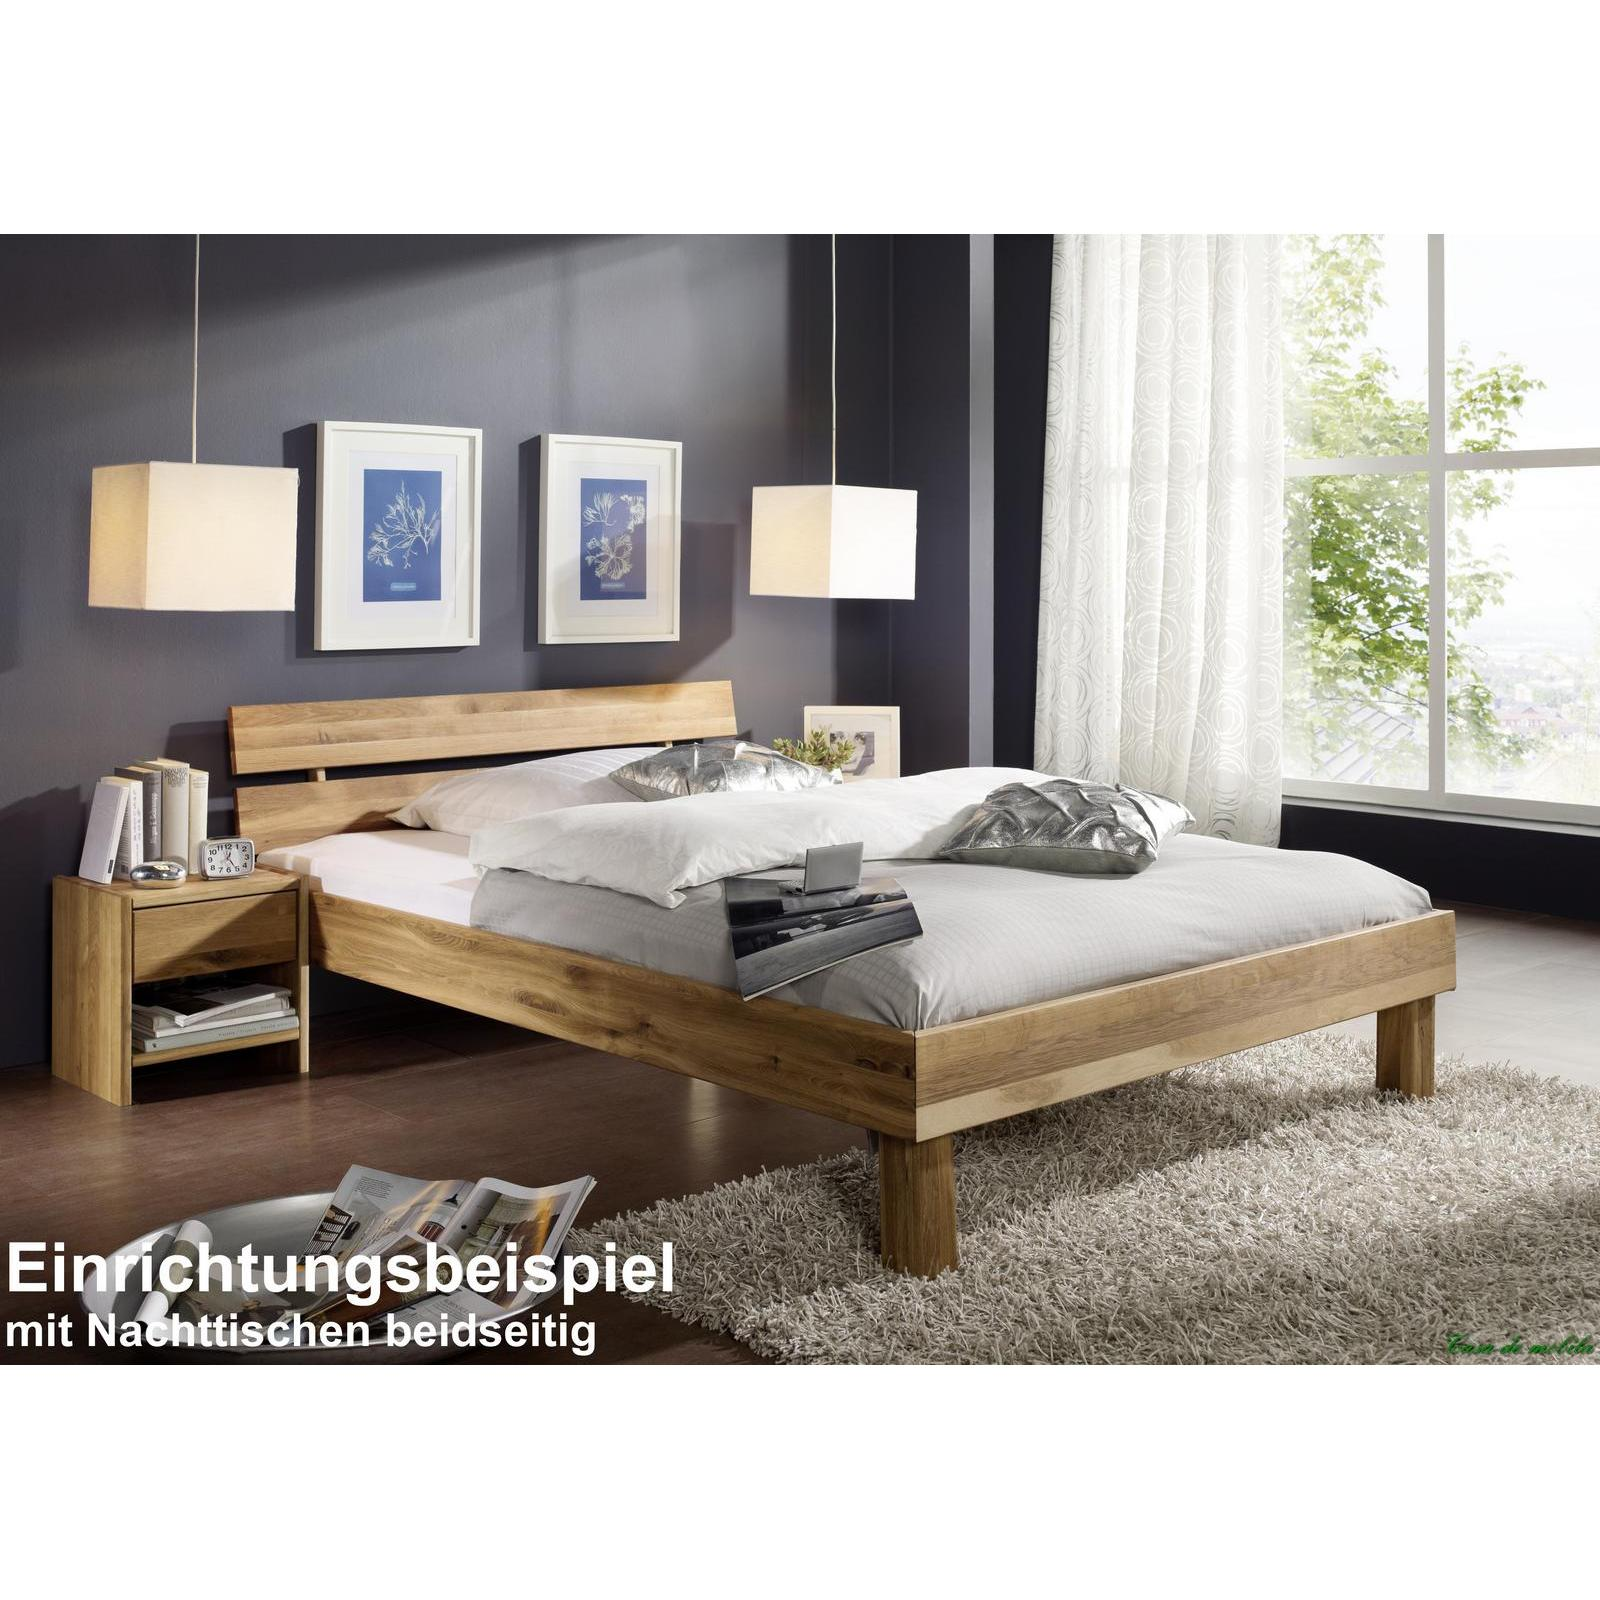 massivholz doppelbett mit schubladen eiche massiv bett wildeiche campino eichenbett 180x200 4. Black Bedroom Furniture Sets. Home Design Ideas